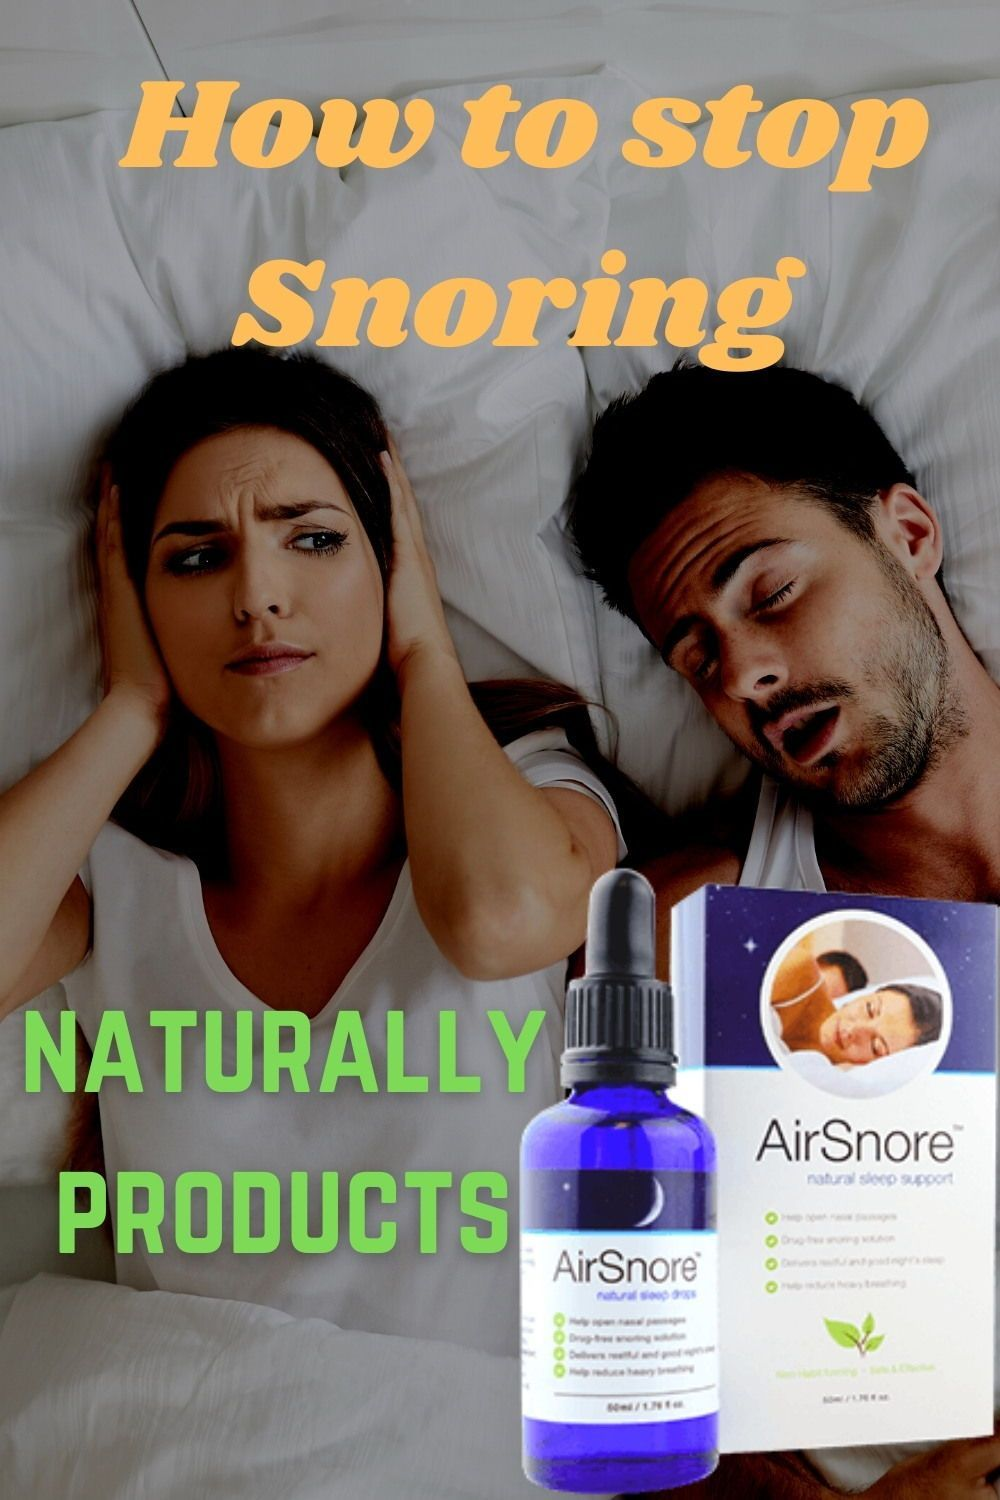 Airsnore instantly snoring stop device or drop in 2020